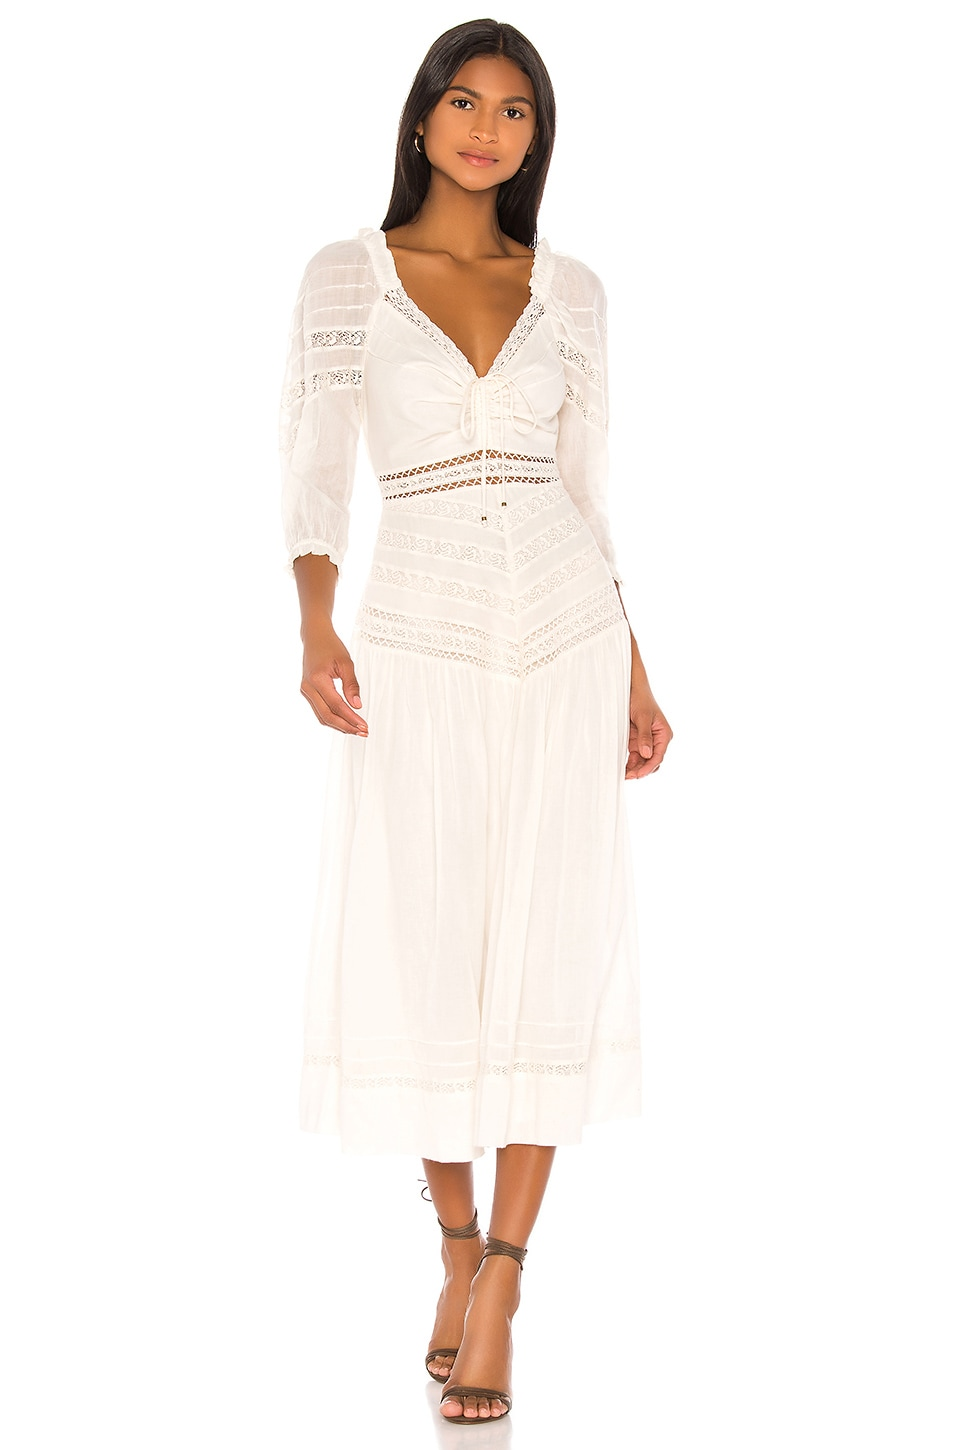 Free People Sweethearts Midi Dress in Ivory